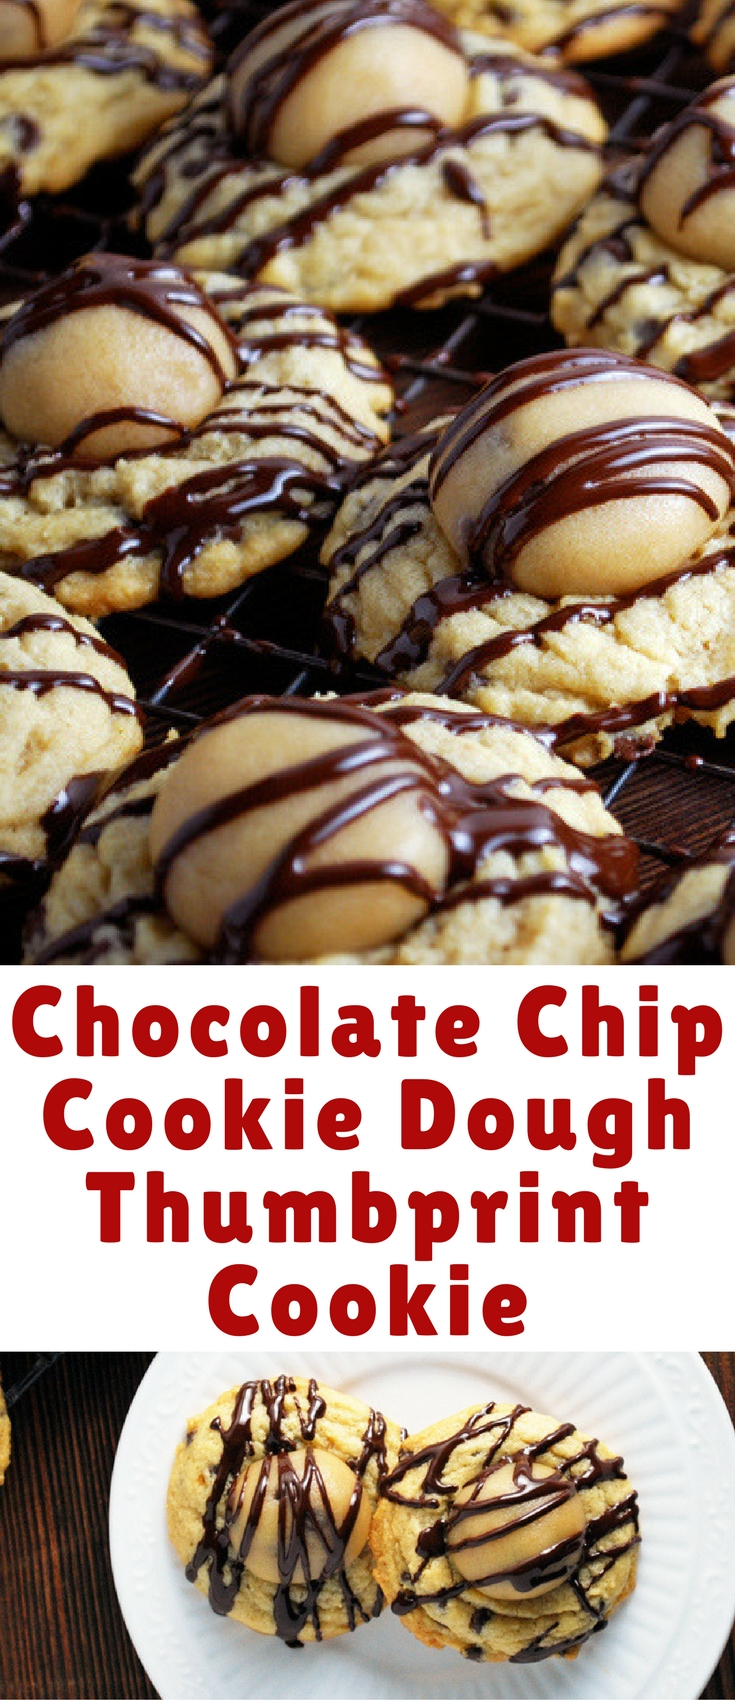 You won't be able to decide what you like better, the soft, chewy chocolate chip cookie or the rich cookie dough center.